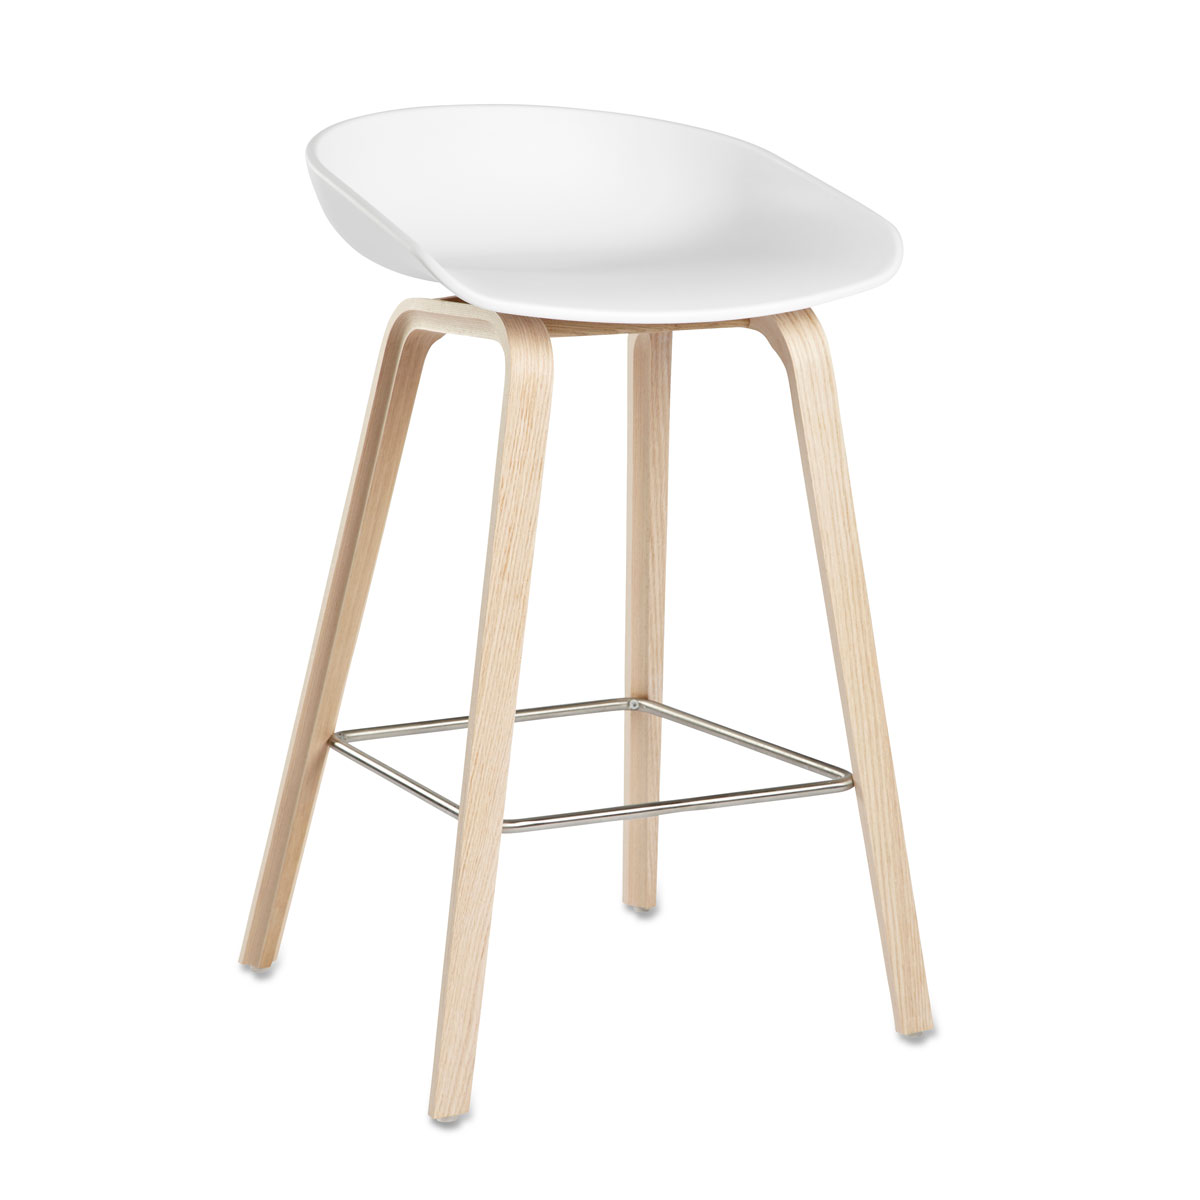 Pin hay about a stool aas32 tabouret blanc amp ch ne on - Tabouret hay about a stool ...